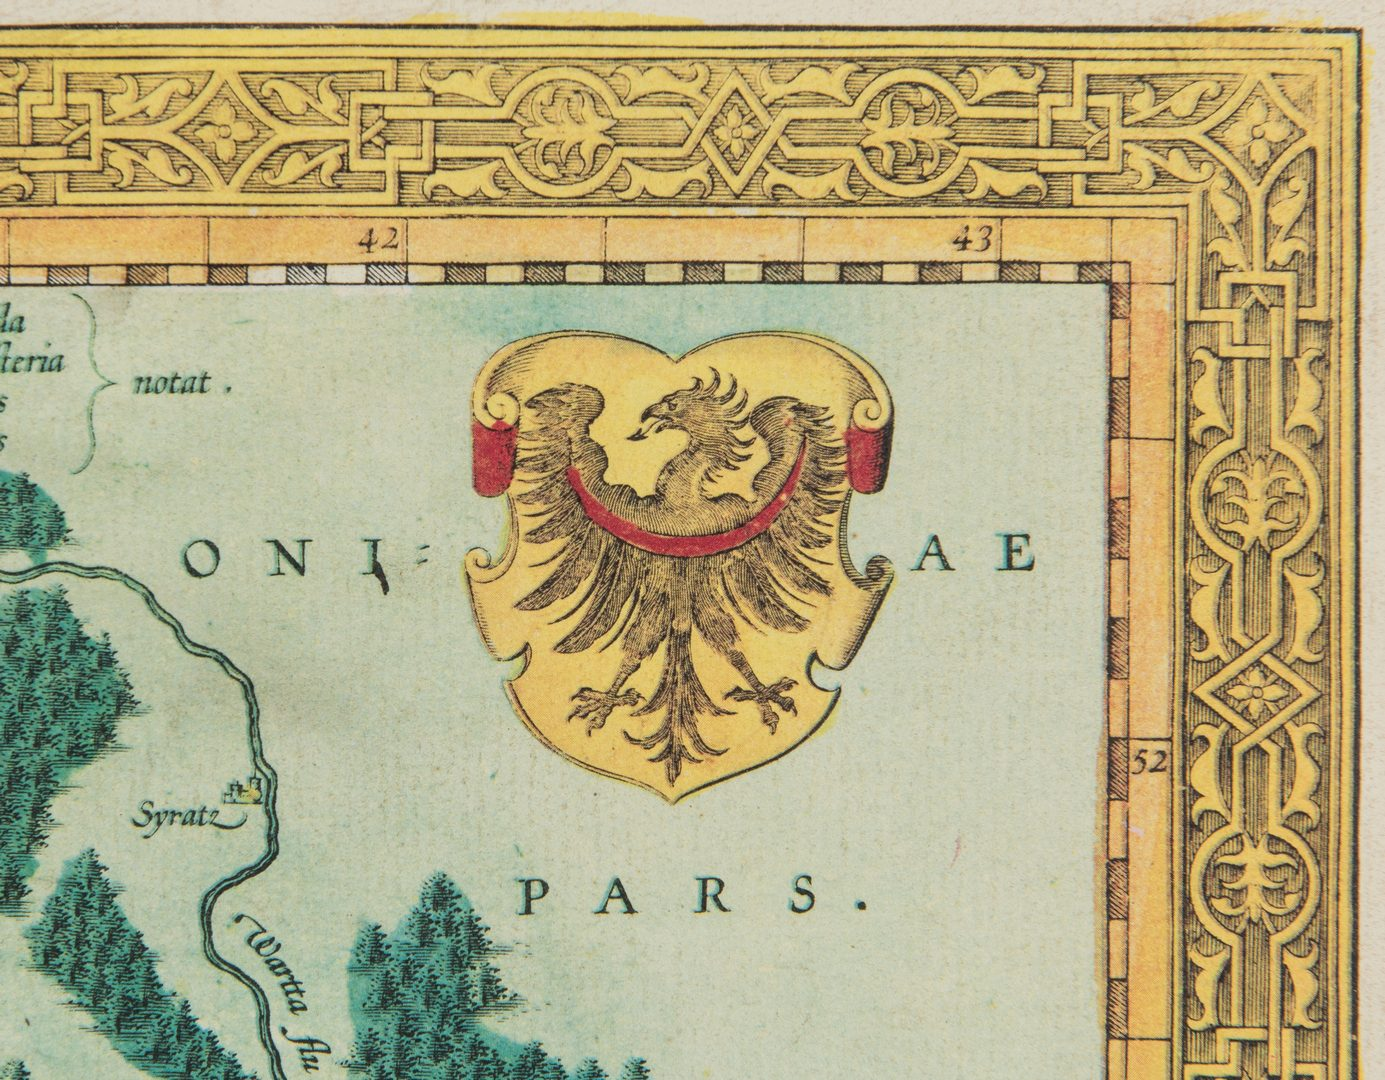 Lot 170: 3 Maps, incl. Helwig, Ortelius, Munster, and Vaugondy